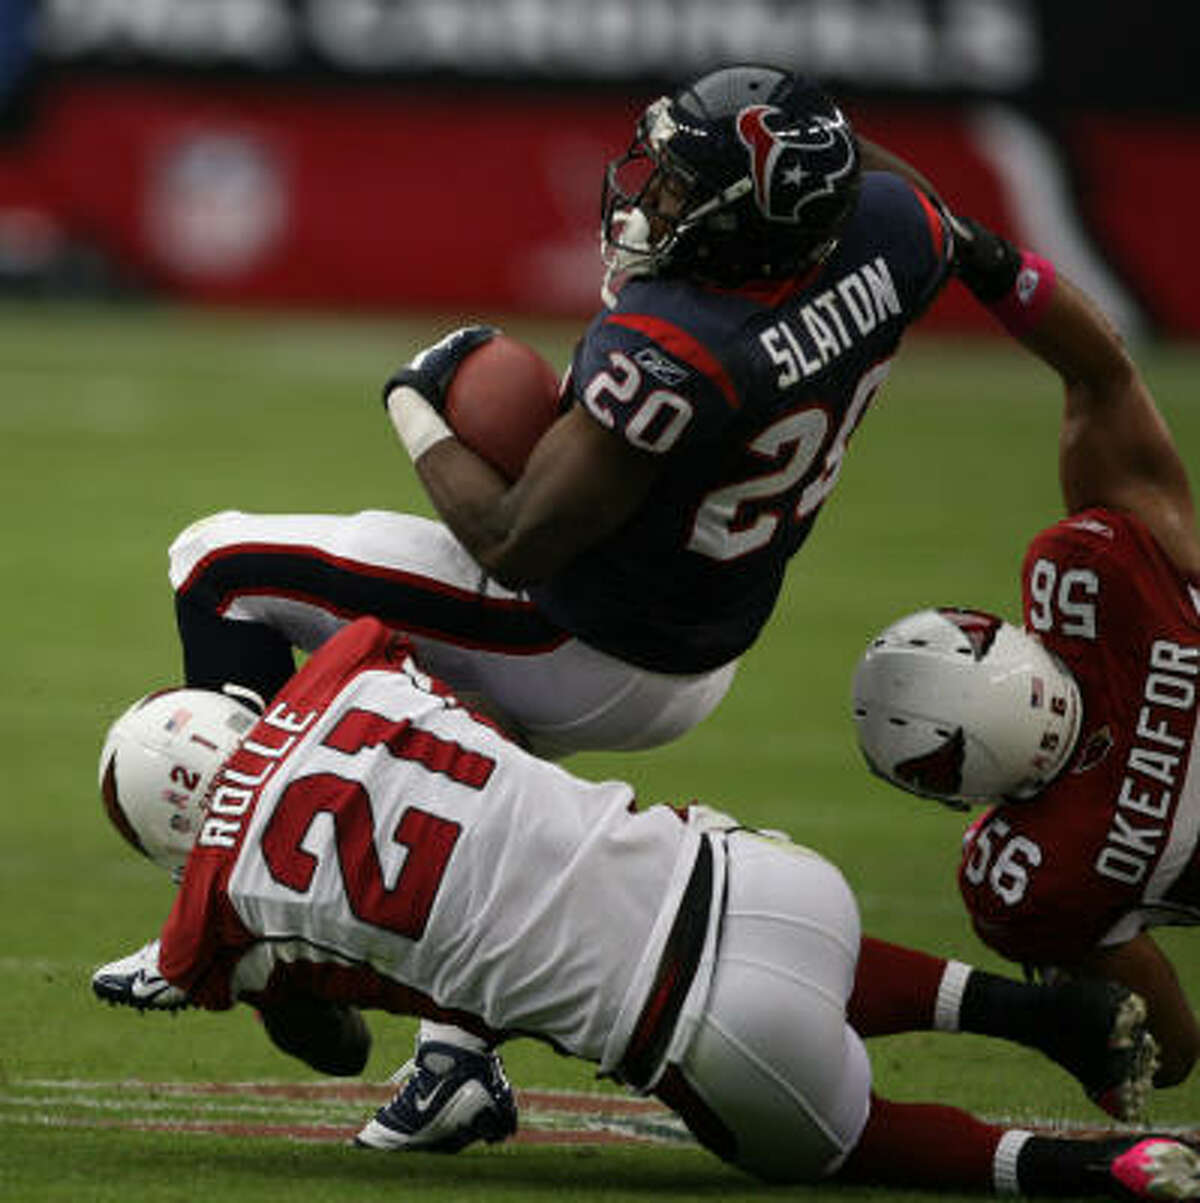 Running backs Steve Slaton (pictured) was more productive as a receiver than as a runner. He ran for 39 yards and had six catches. Chris Brown scored on a 1-yard run but was stuffed at the 1 on the Texans' last play that could have forced overtime. F